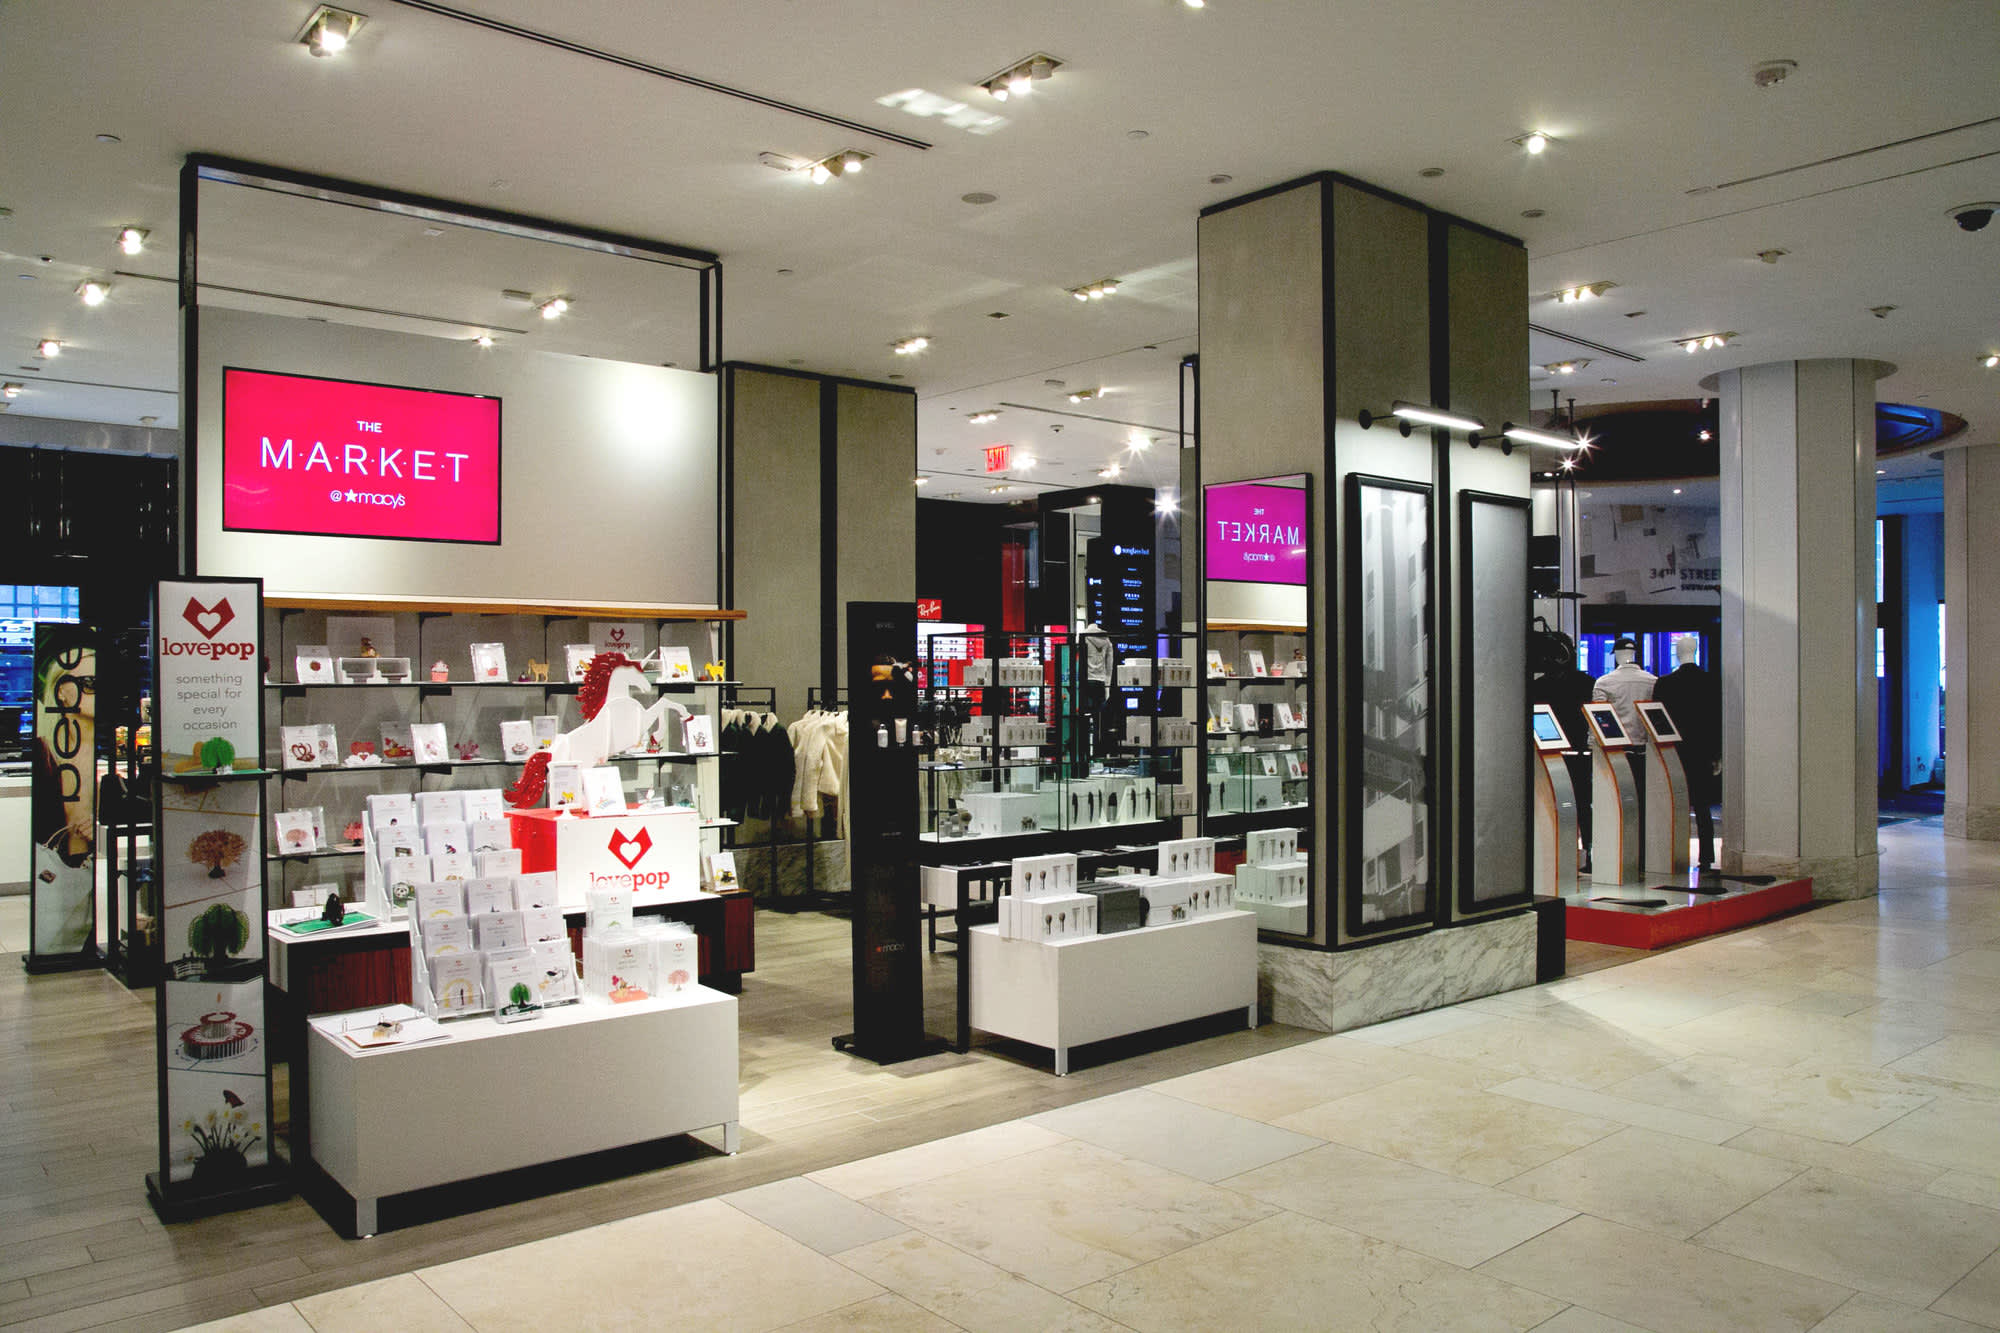 cade787d3 Macy's teams with Facebook to bring new brands to pop-up shops for the  holidays